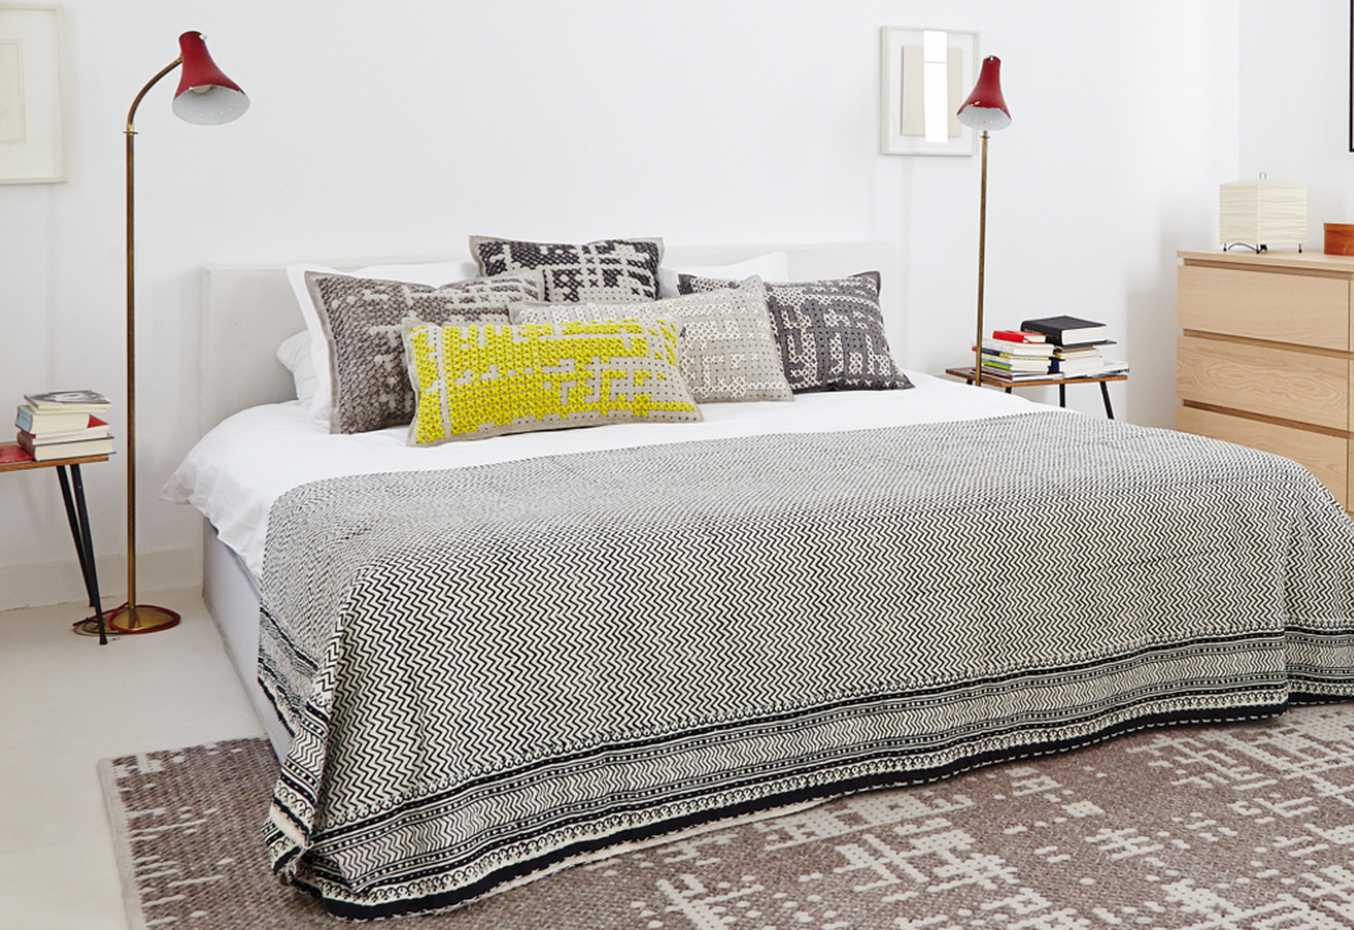 Canevas Cushion by Gan Rugs product image 2